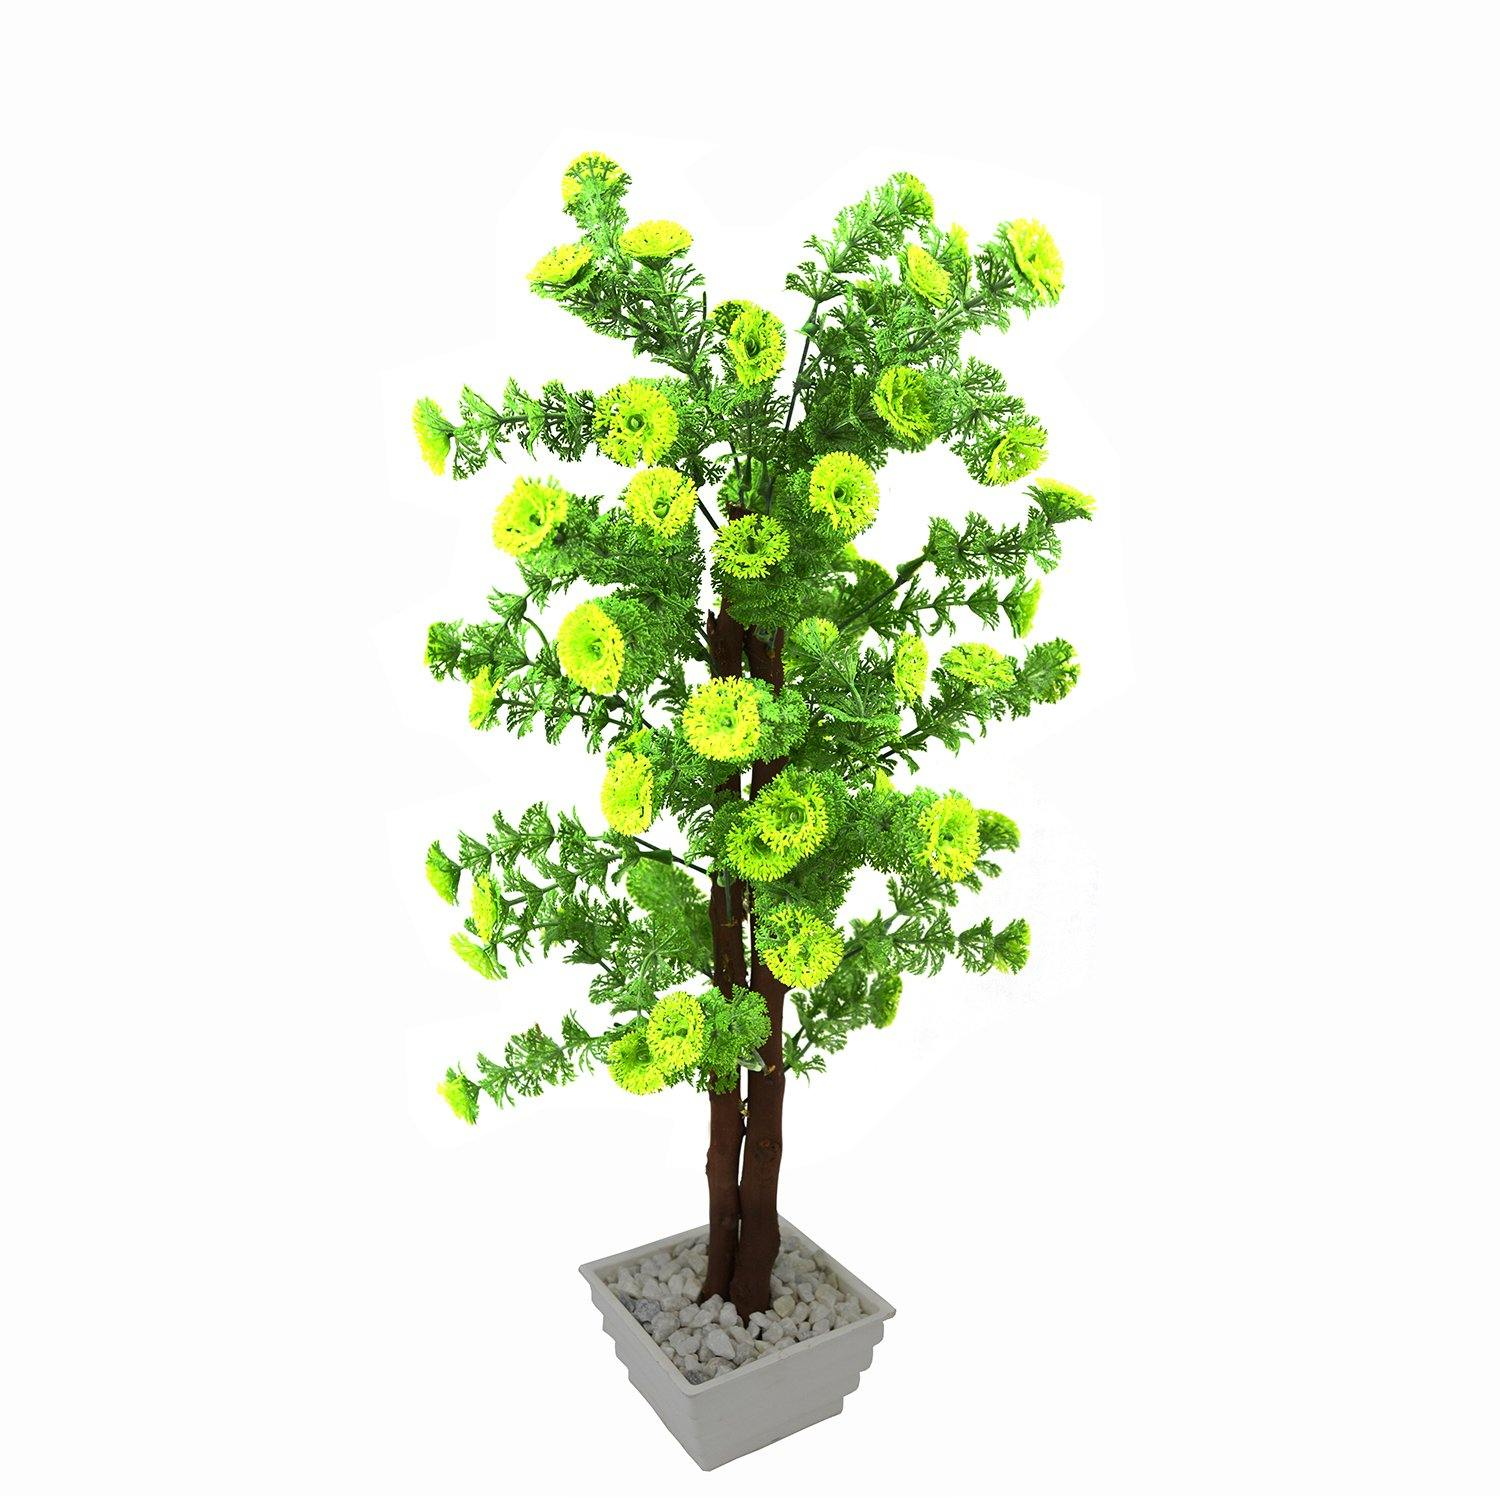 Artificial Corriender Bonsai Tree with White Square pot - Fancy Mart